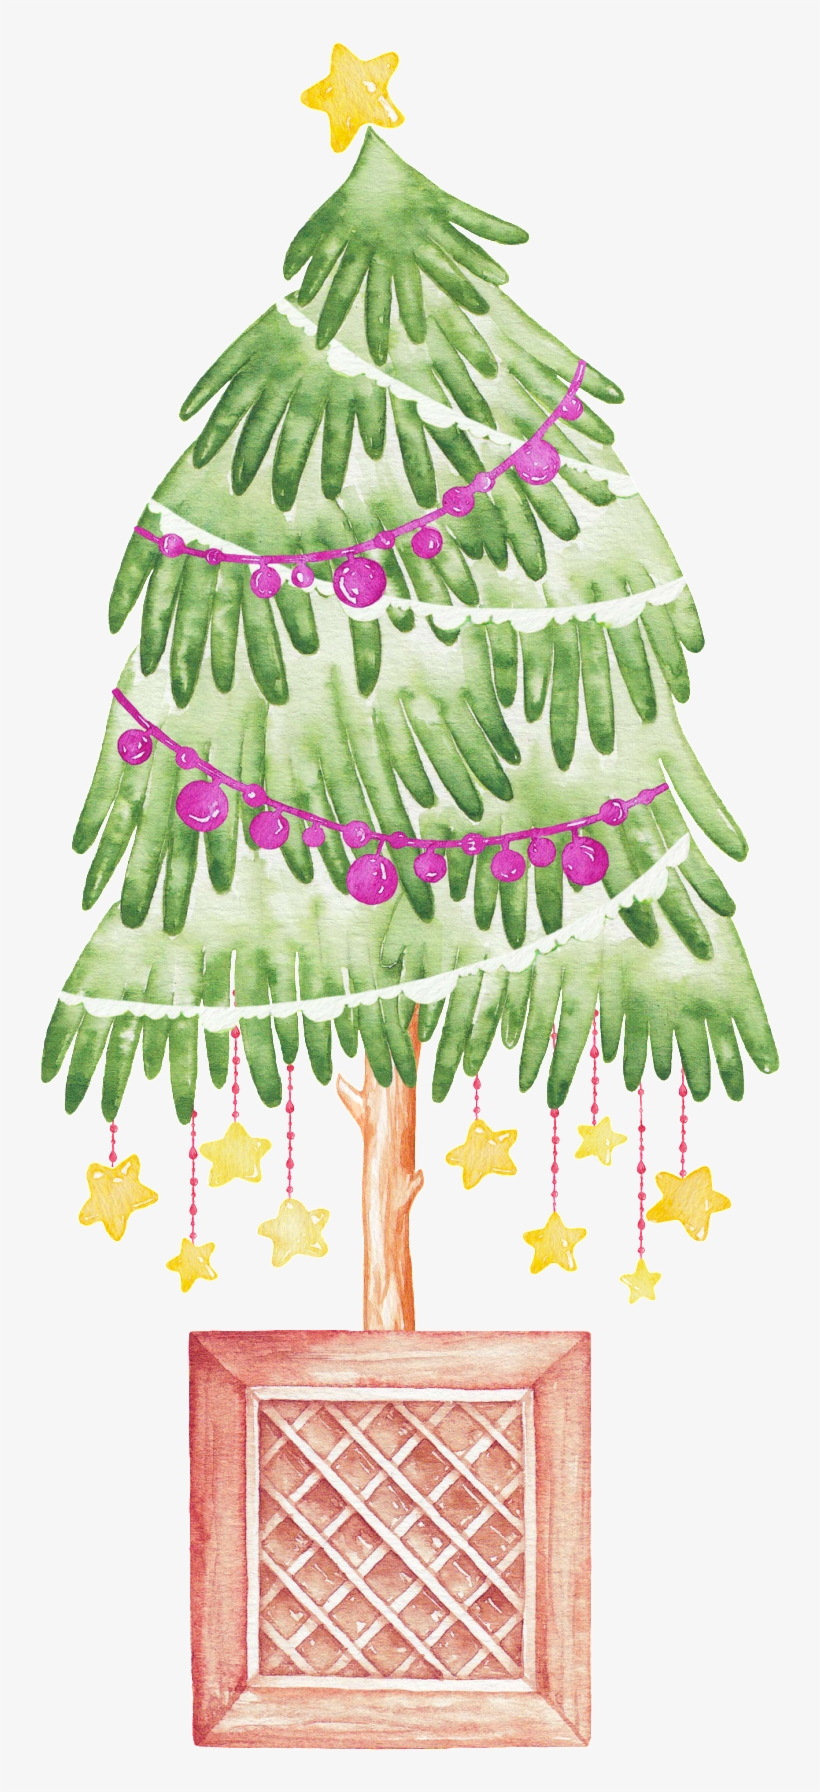 Hand Painted Creative Christmas Tree Png Transparent - Christmas Tree, transparent png #293805